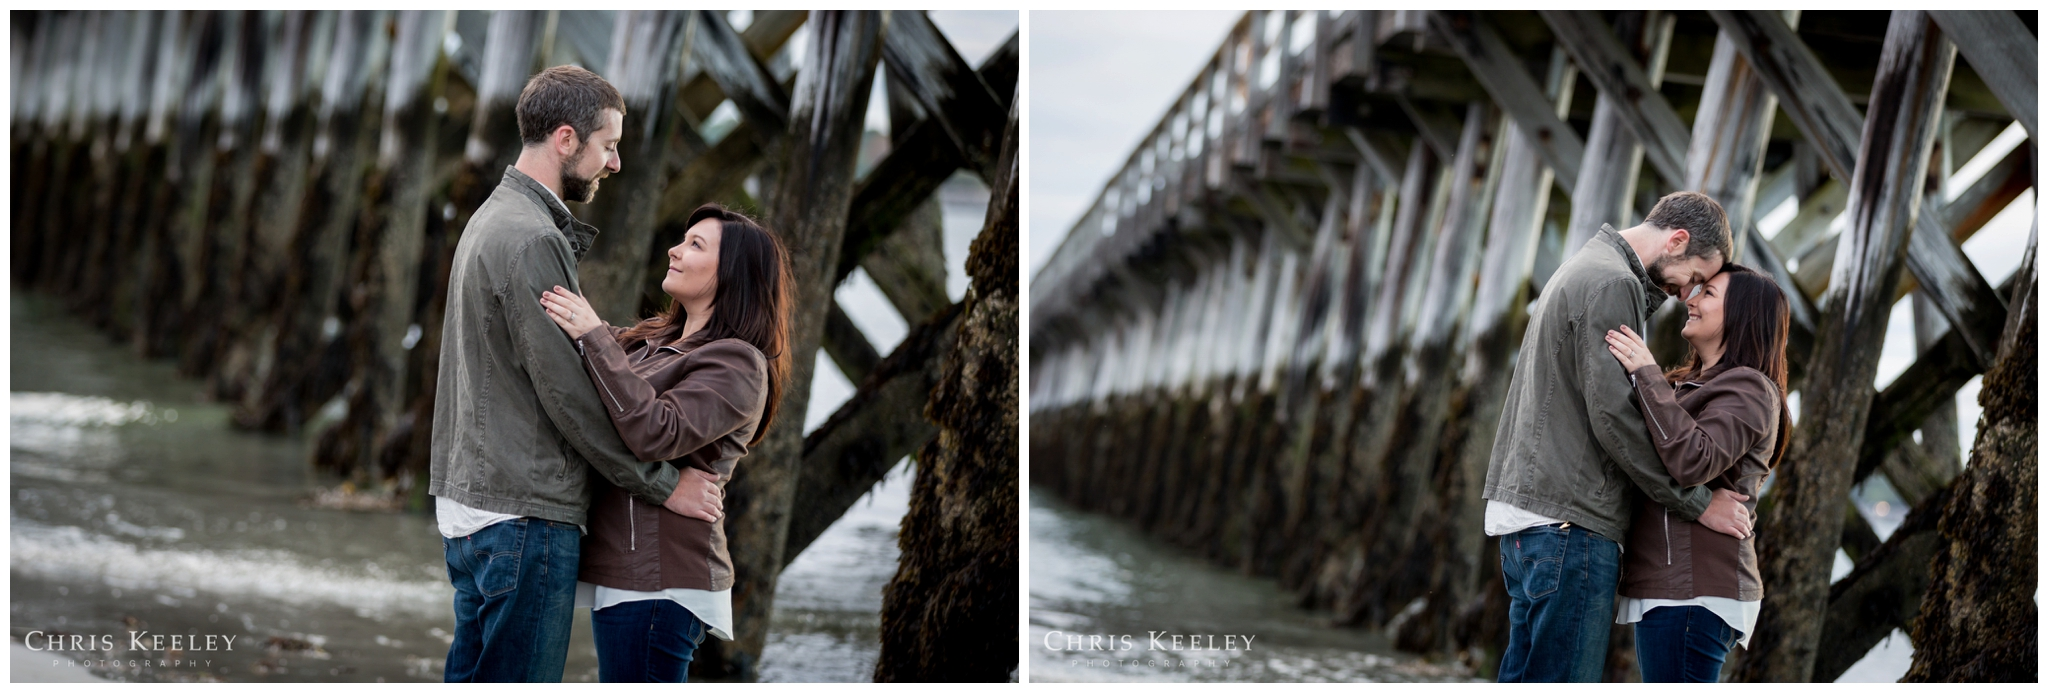 kittery-maine-fort-foster-engagement-photography-session-wedding-photographer-chris-keeley03.jpg